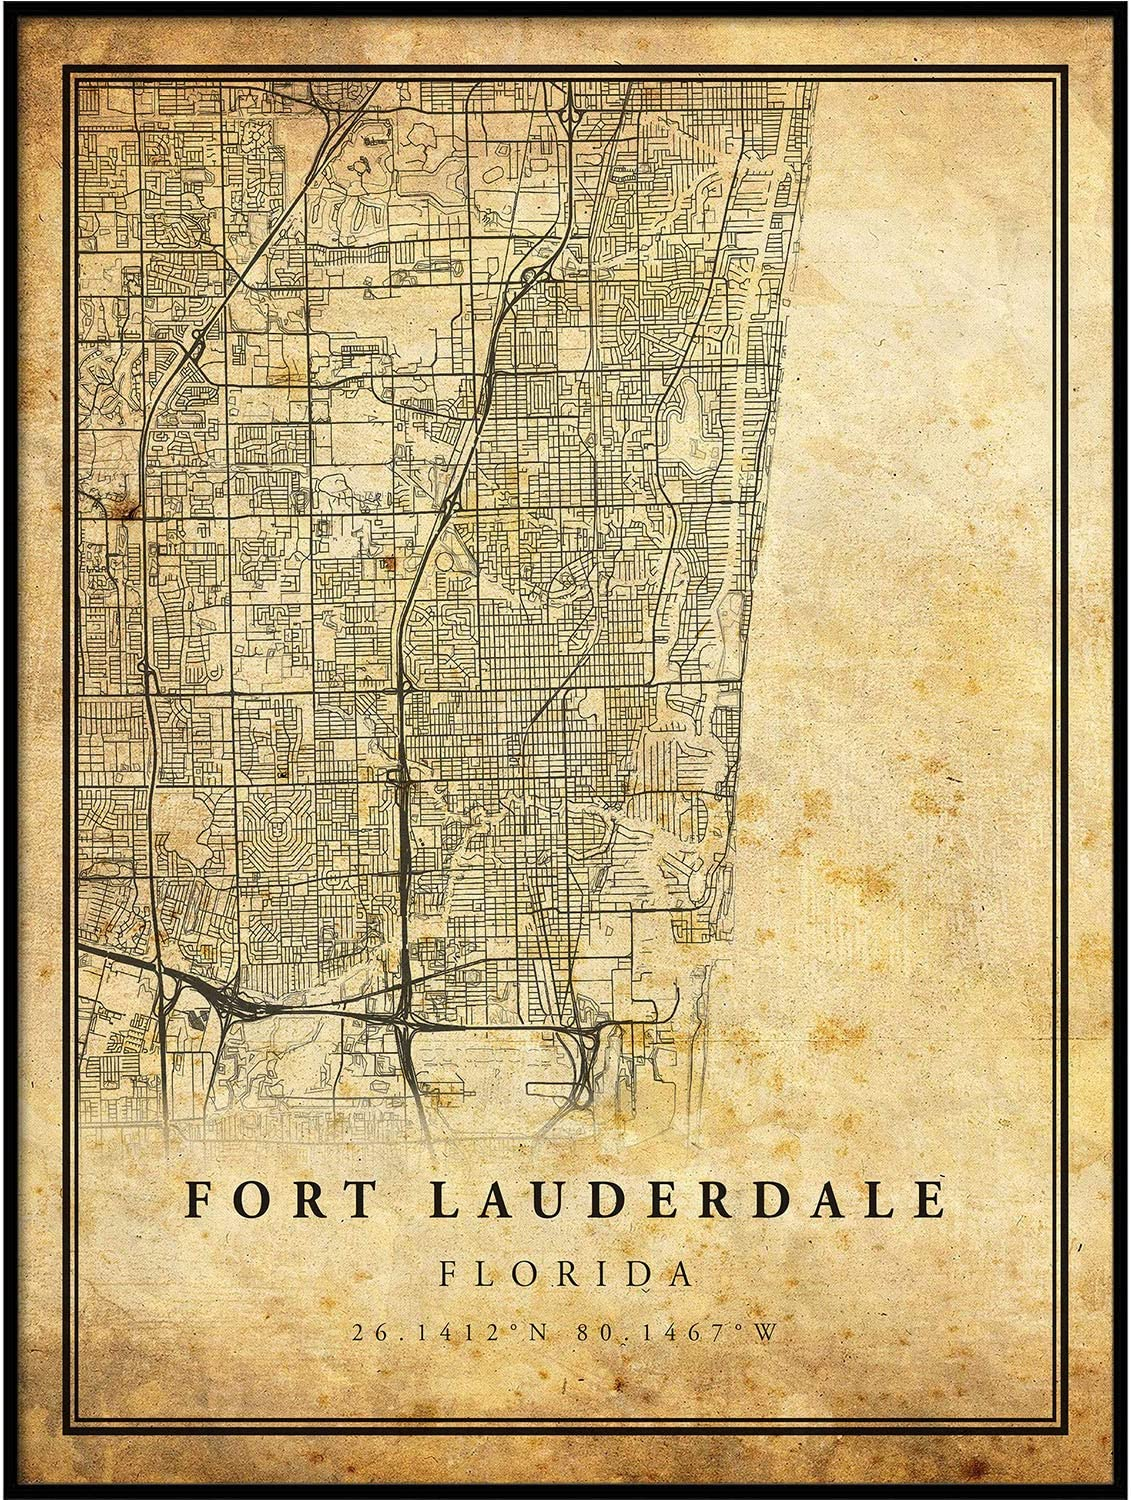 Fort Lauderdale map Vintage Style Poster Print | Old City Artwork Prints | Antique Style Home Decor | Florida Wall Art Gift | map Vintage 8.5x11